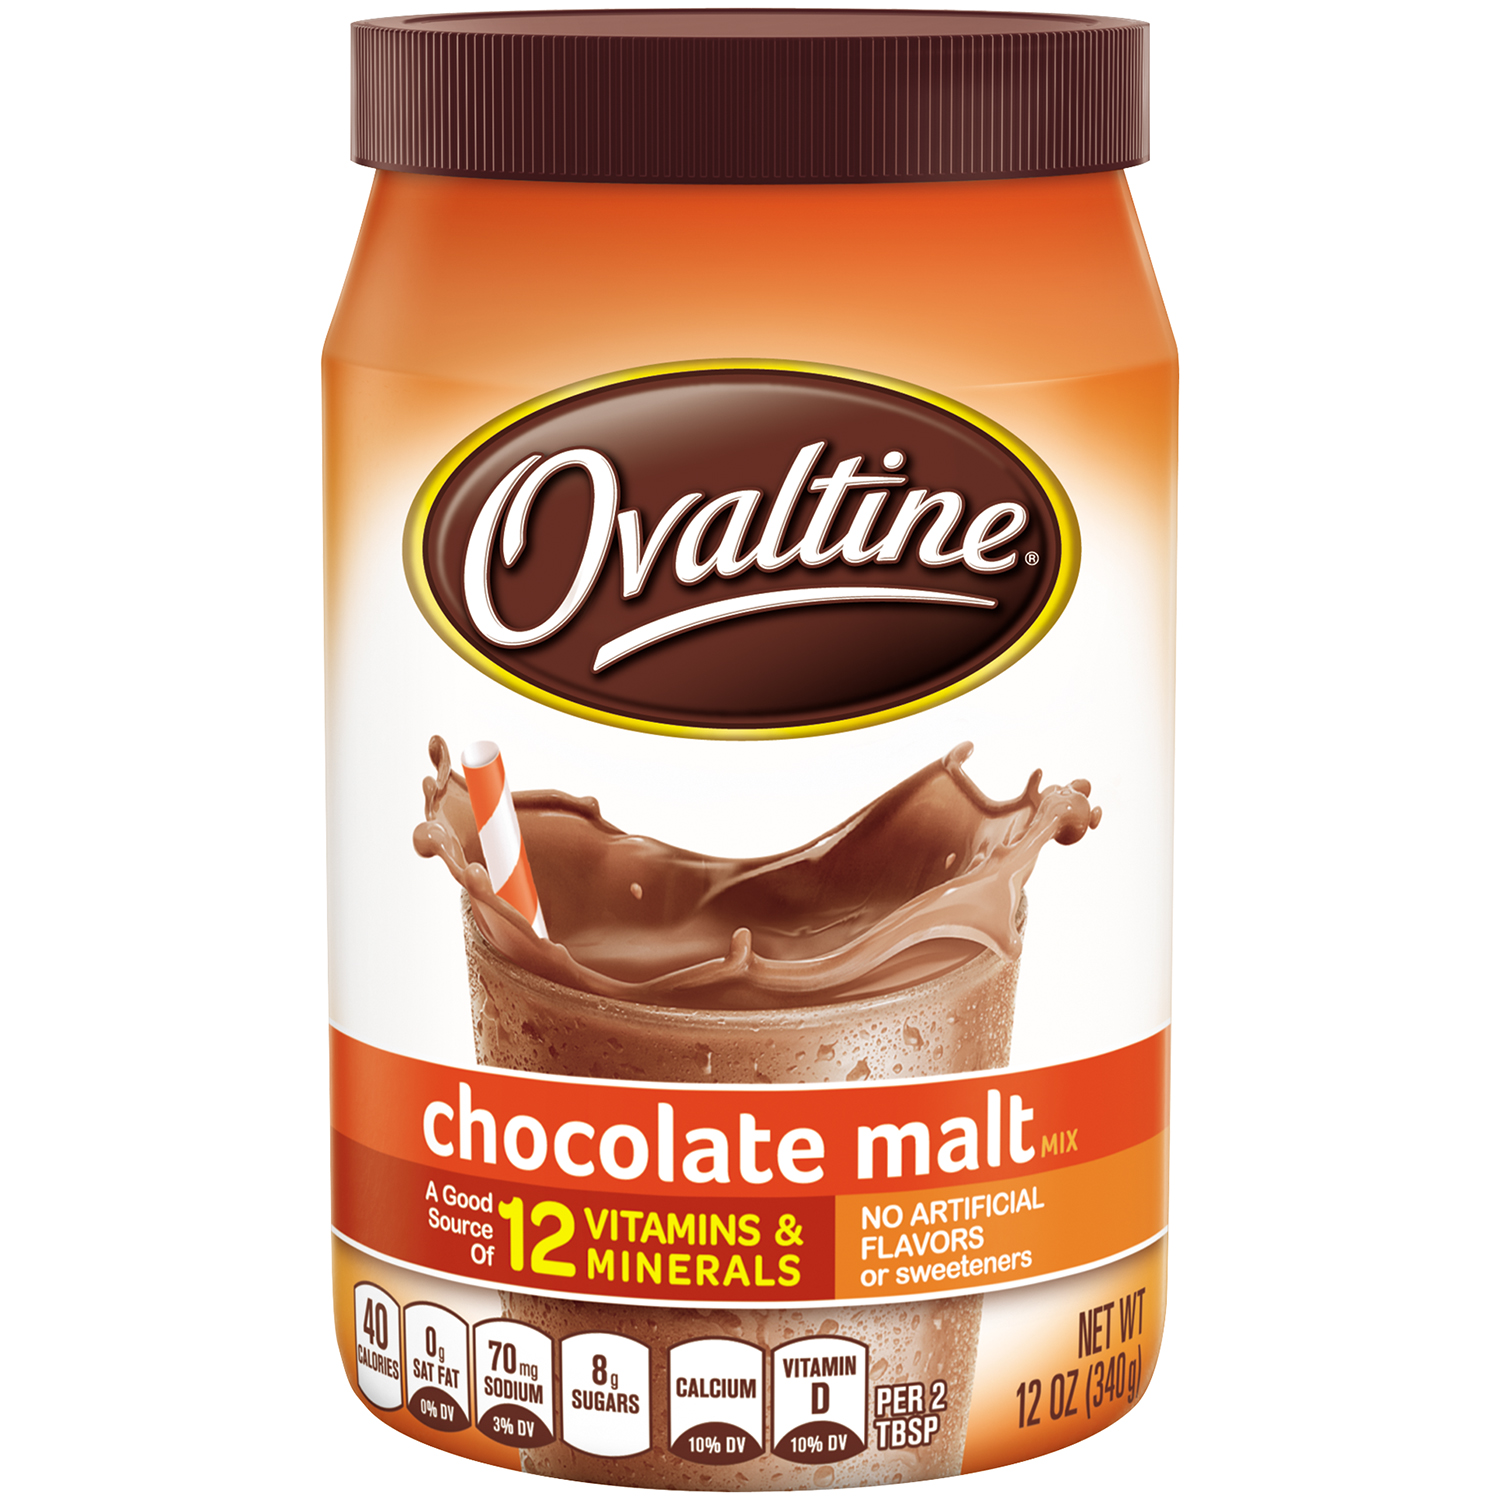 OVALTINE Chocolate Malt Flavored Milk Mix 12 oz. Canister